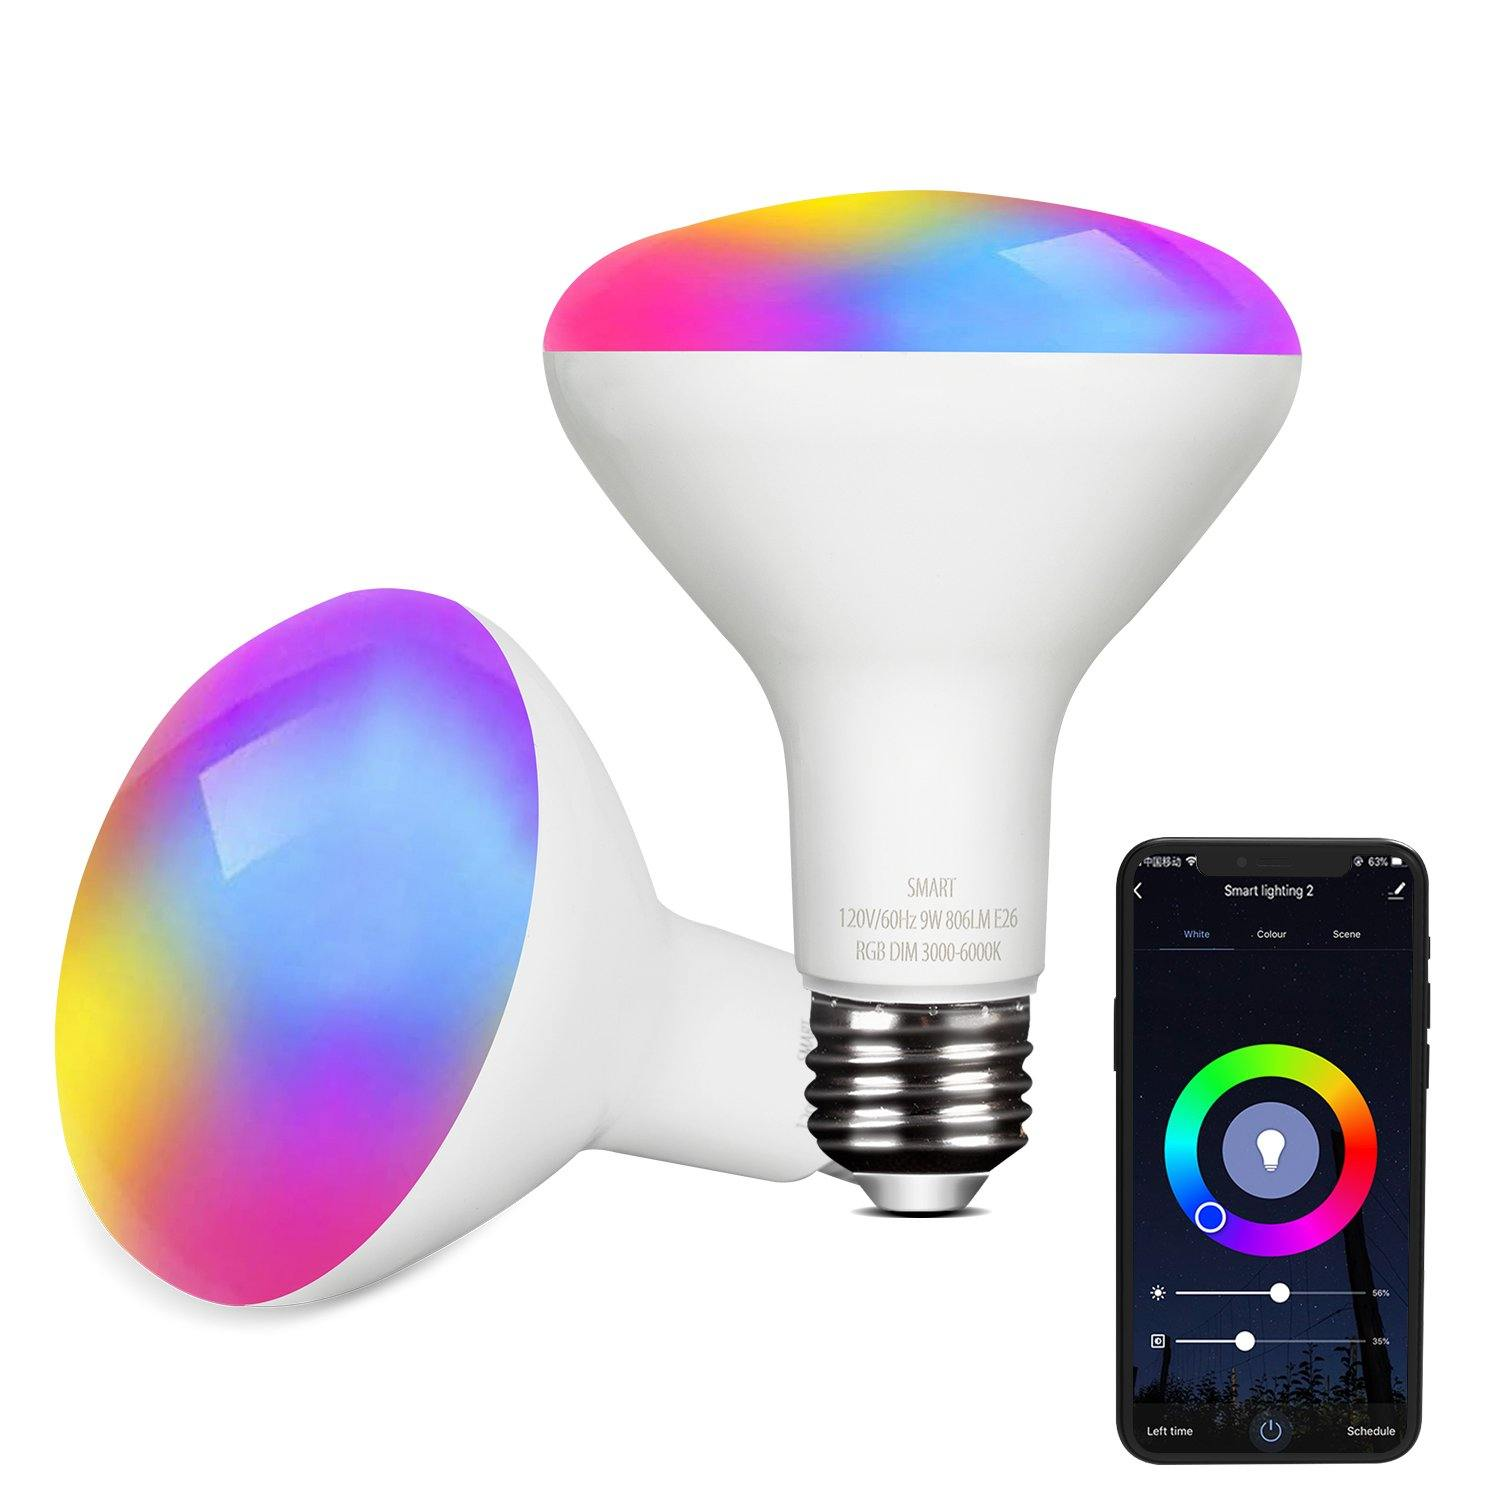 WiFi Smart Light Bulb (2 packs)-Compatible with Alexa and Google Assistant Color Changing Smart Bulbs 806lm Multicolor Dimmable 9W LED Lights Bulbs for Home, Party, Stage, Bar - Elecwish